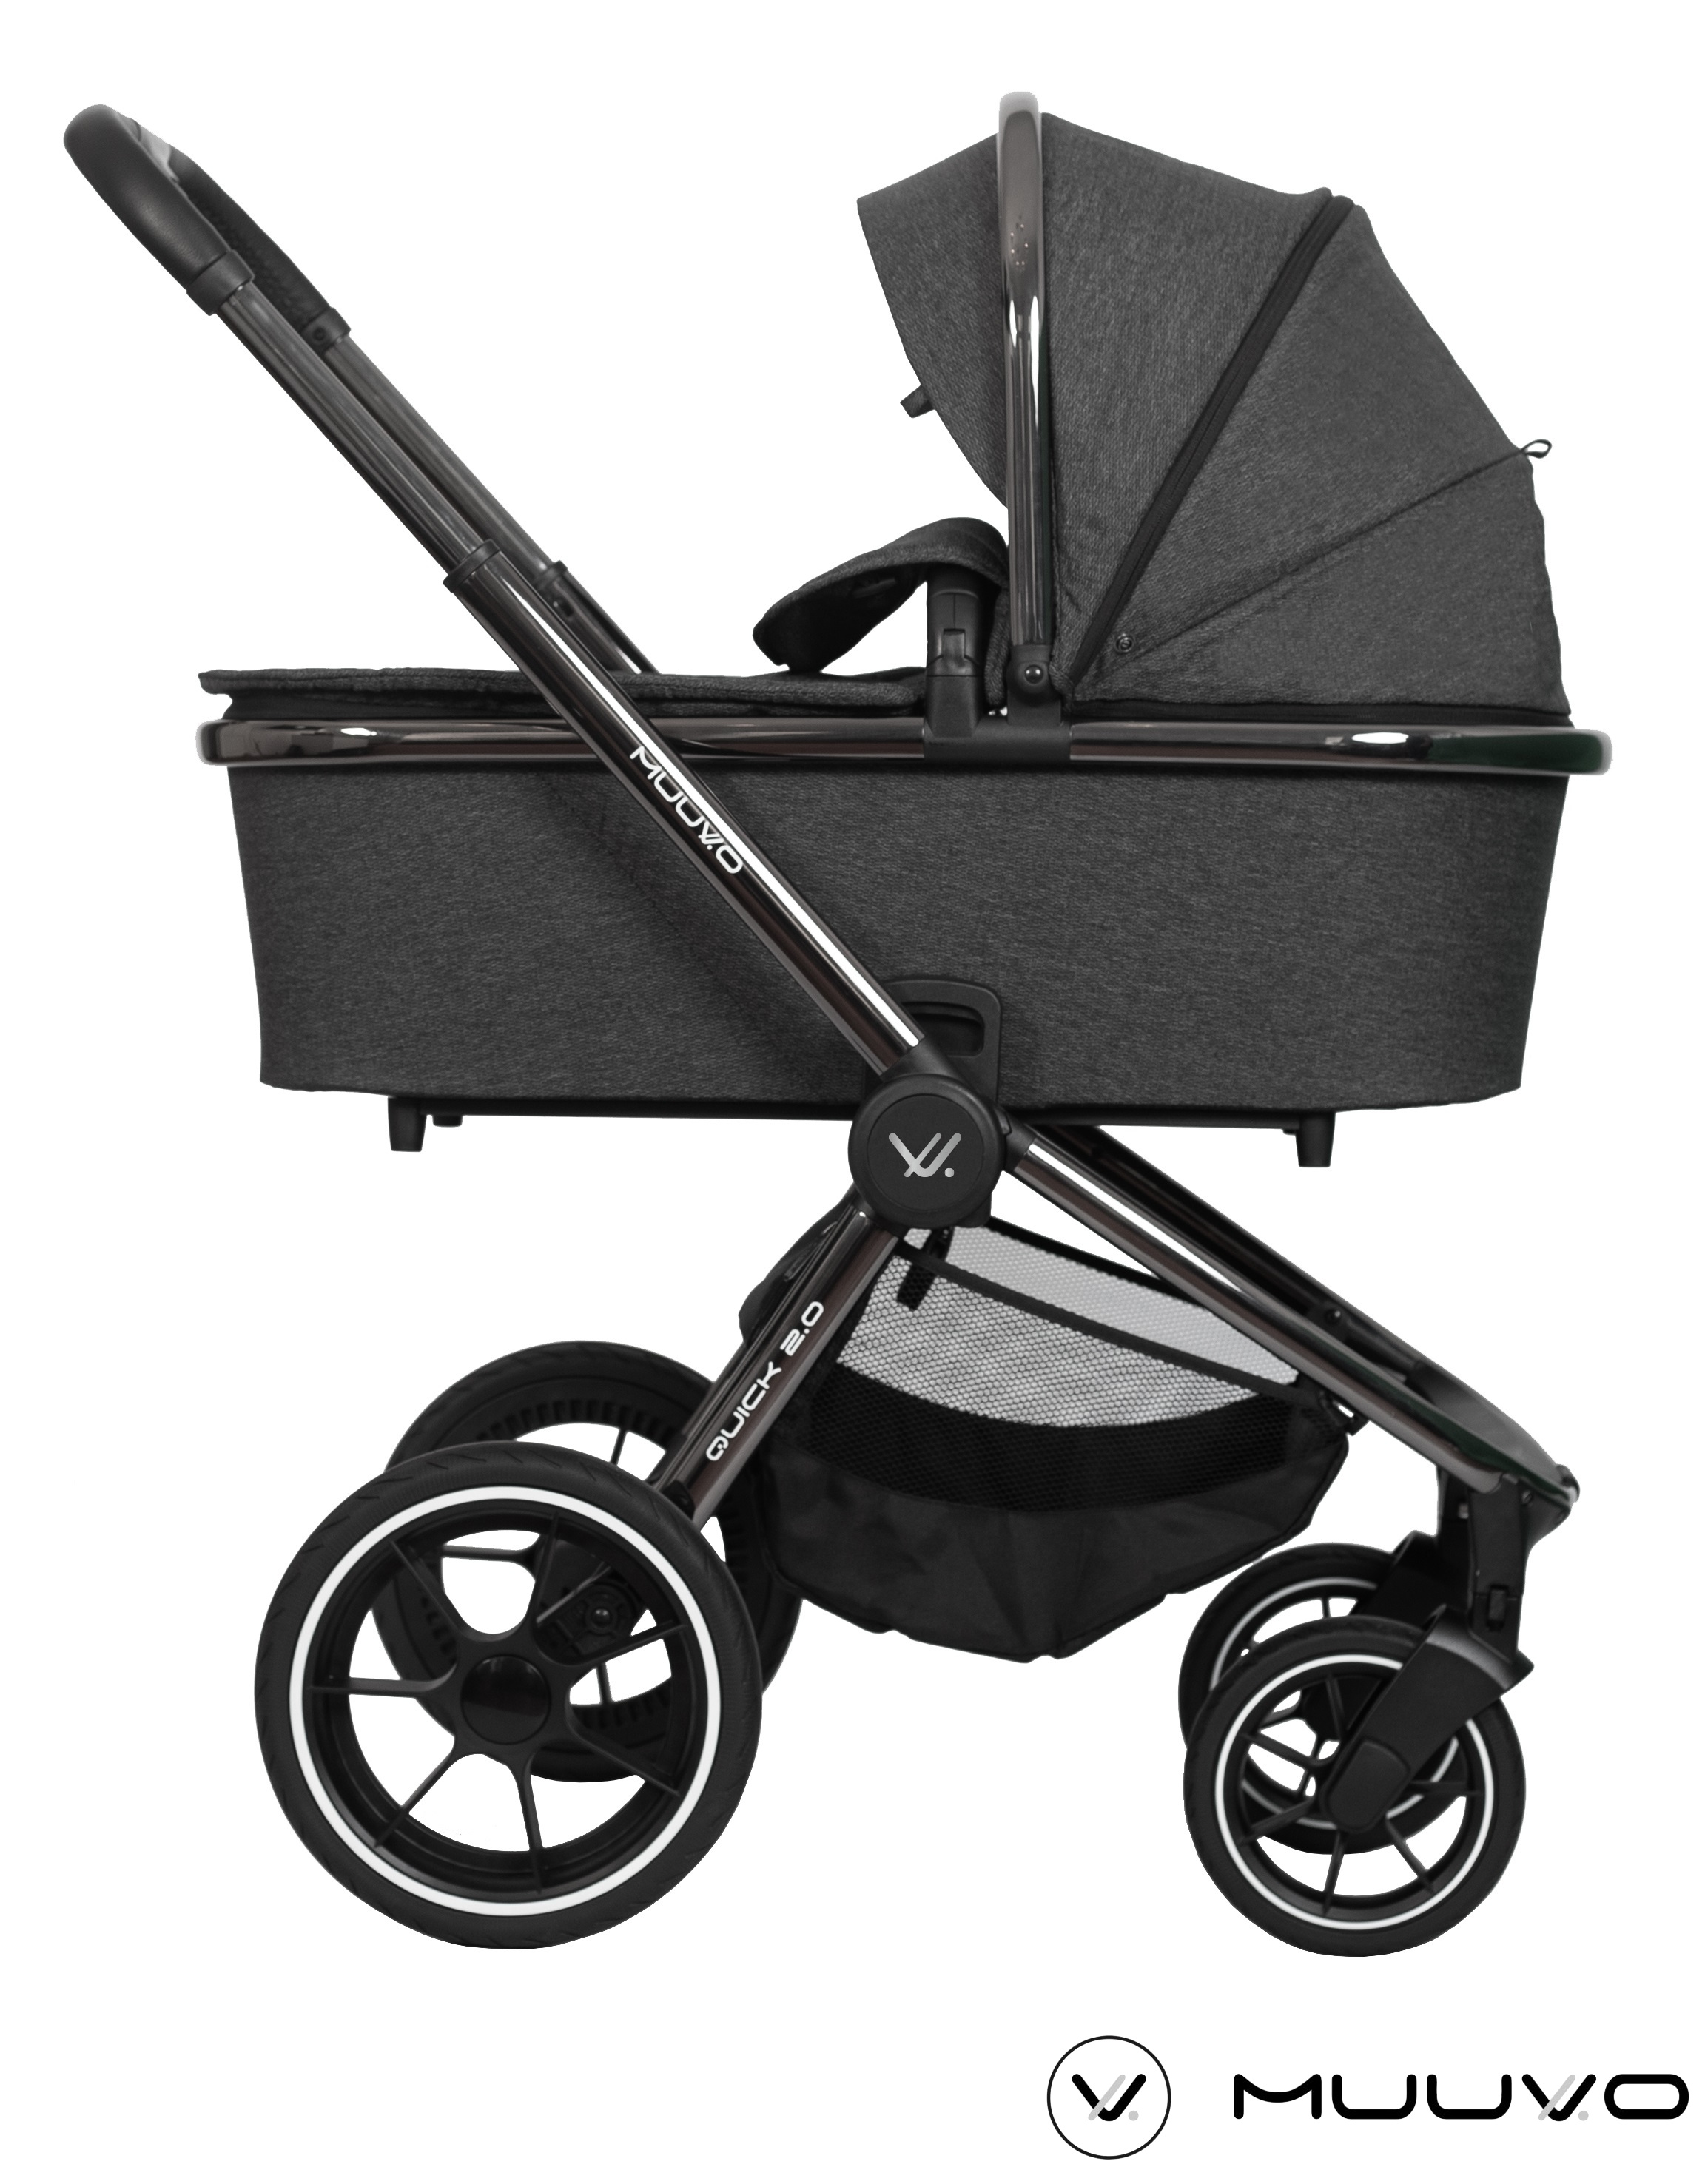 Muuvo-Quick-2.0-Chrome-Black-Anthracite-Gondola-xl